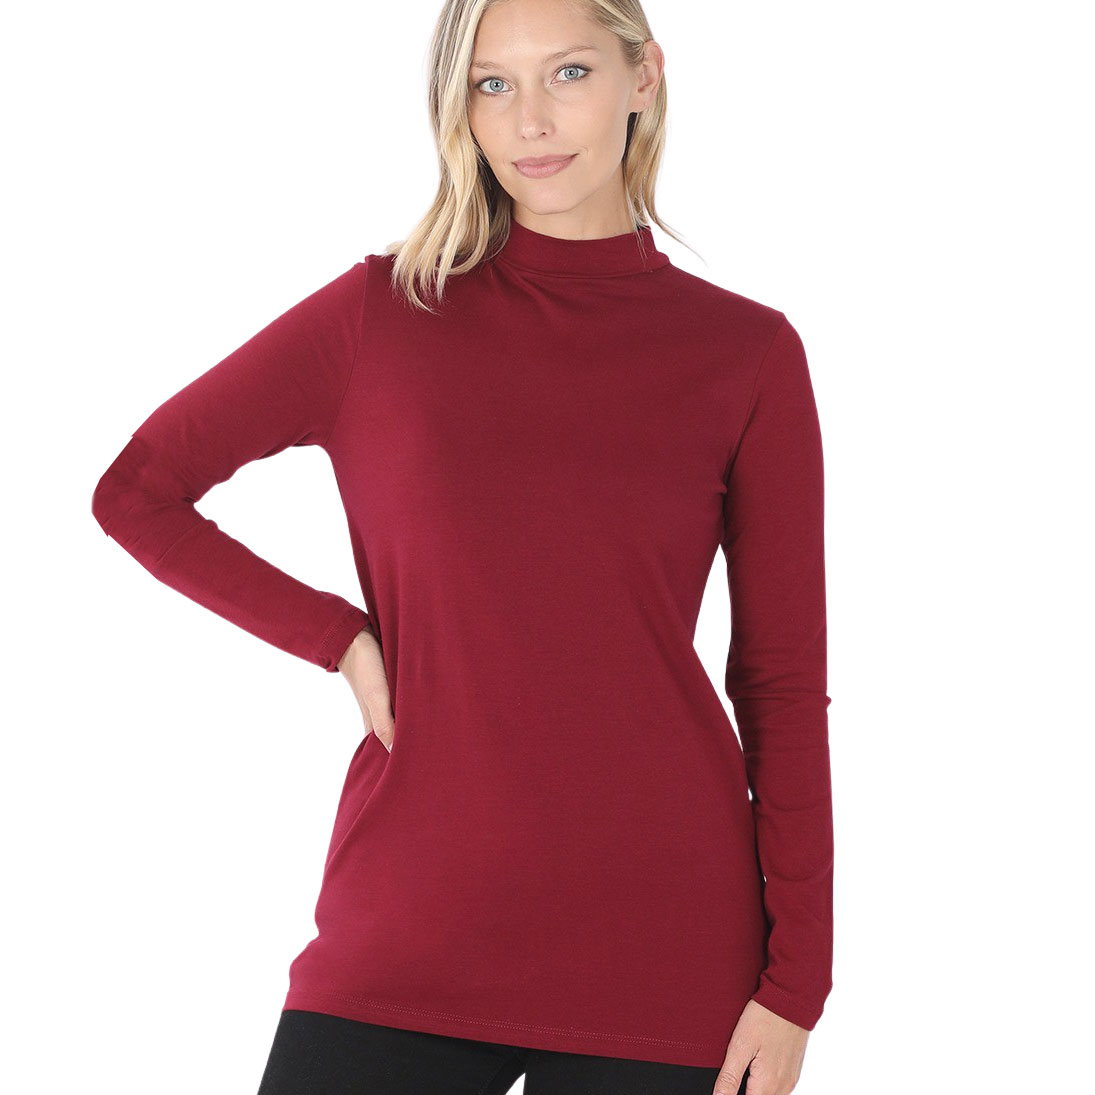 Mock Turtleneck - Cotton Long Sleeve 1059 - Cabernet Mock Turtleneck - Cotton Long Sleeve 1059